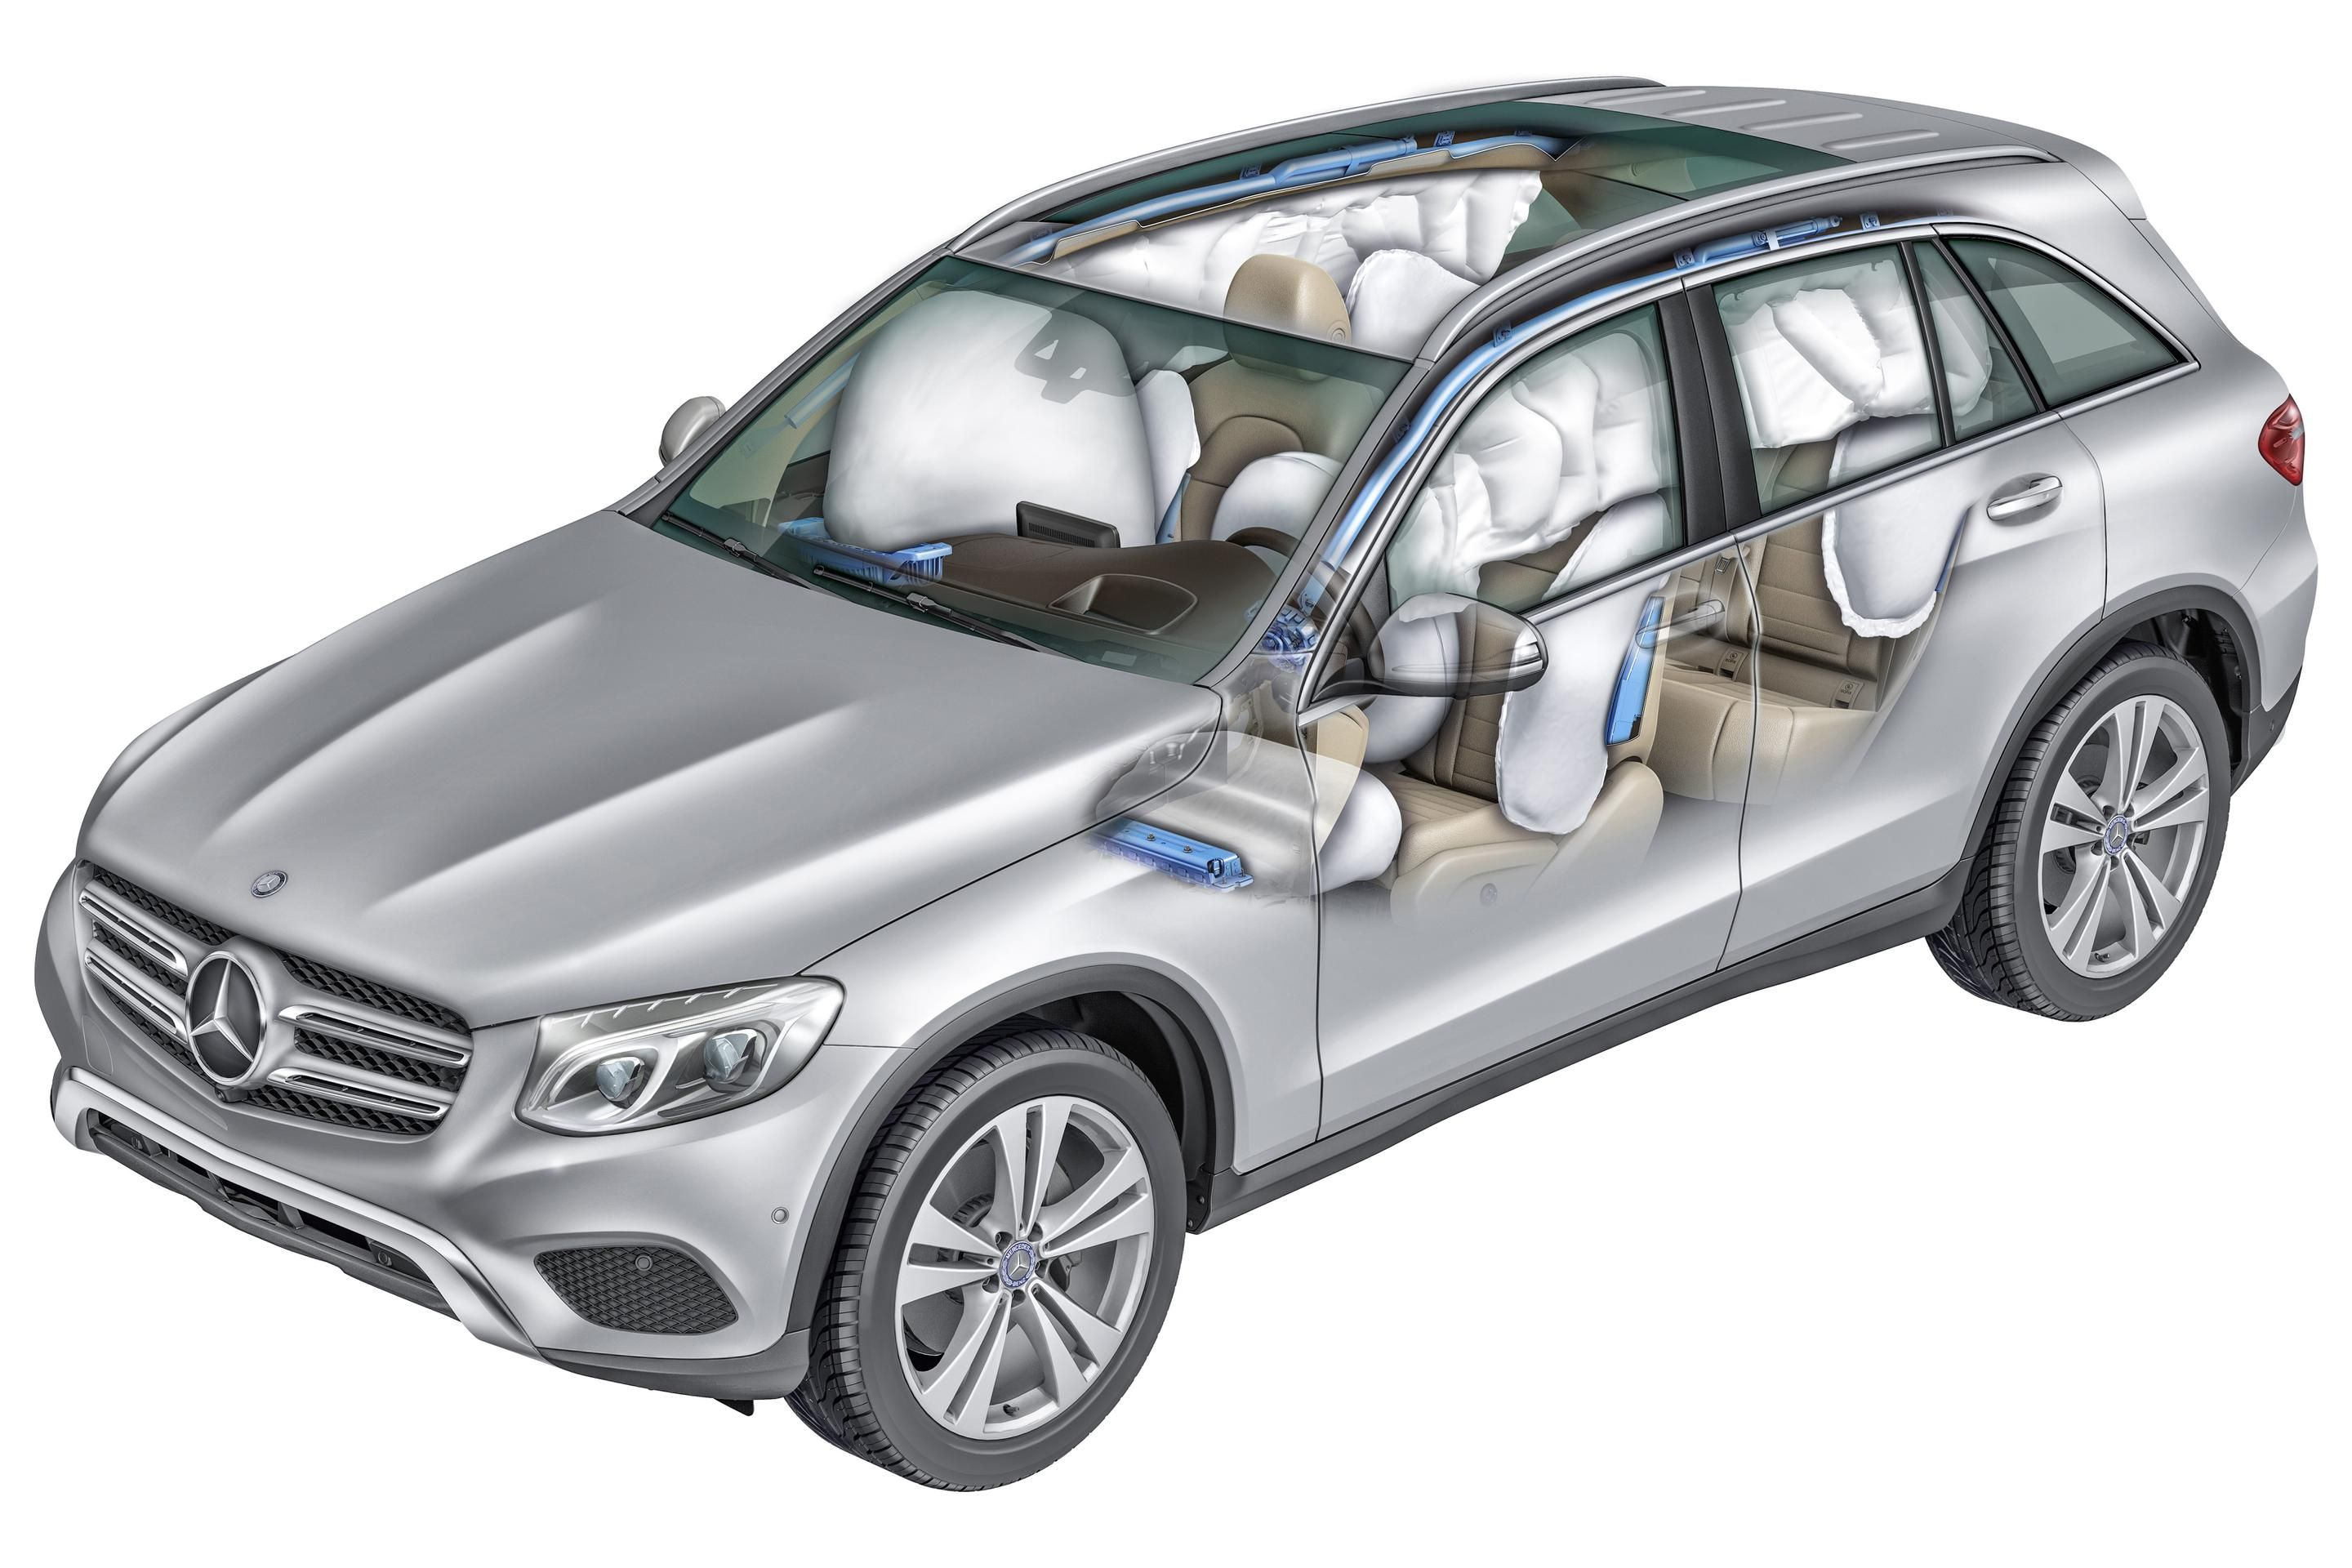 2016 Mercedes-Benz GLC  #2015 #Segment_J #Mercedes_Benz_GLC #German_brands #Serial #4Matic #Mercedes_Benz_GLC_250 #2016MY #Mercedes_Benz_GLC_300 #Mercedes_Benz_GLC_350e #Mercedes_Benz_GLC_250d #Mercedes_Benz #Mercedes_Benz_GLC_220d